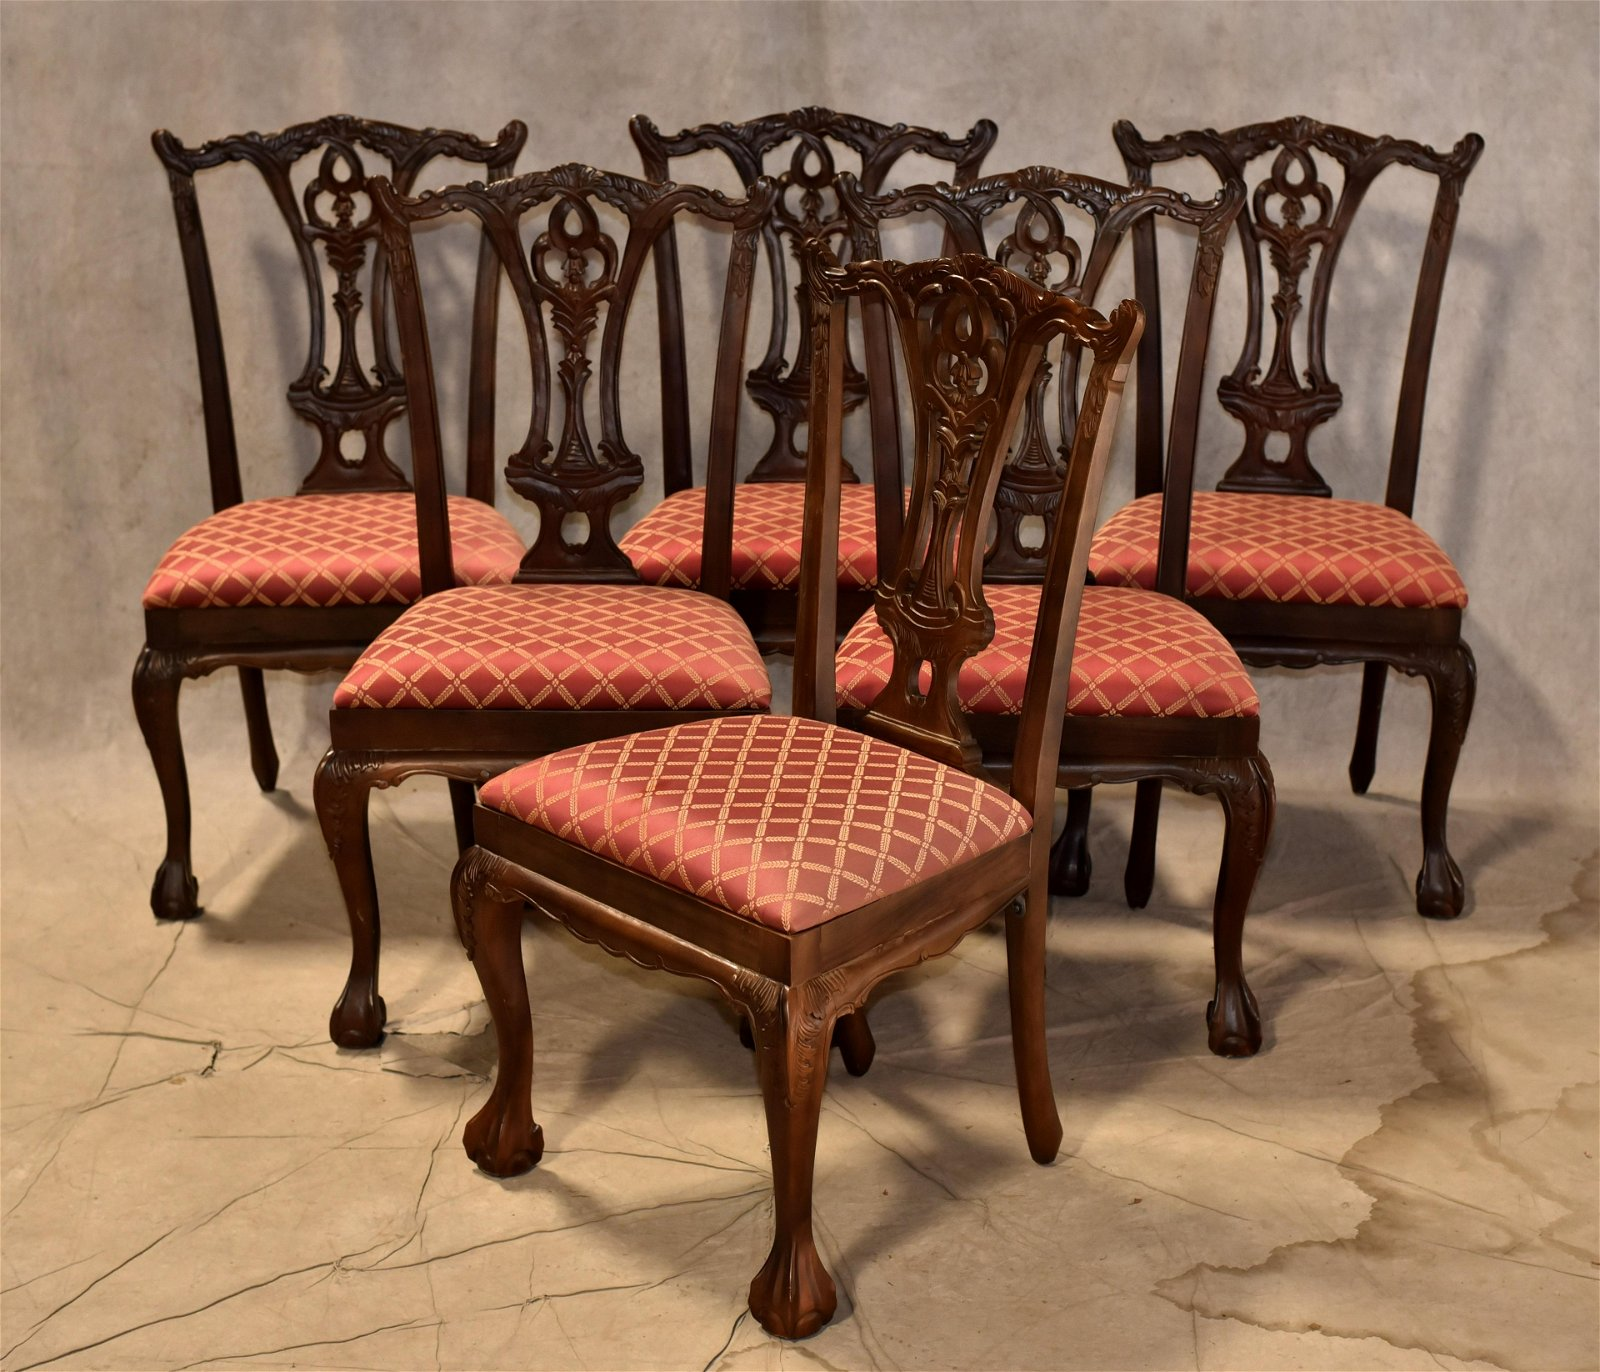 (6) Andre Originals Chippendale style dining chairs